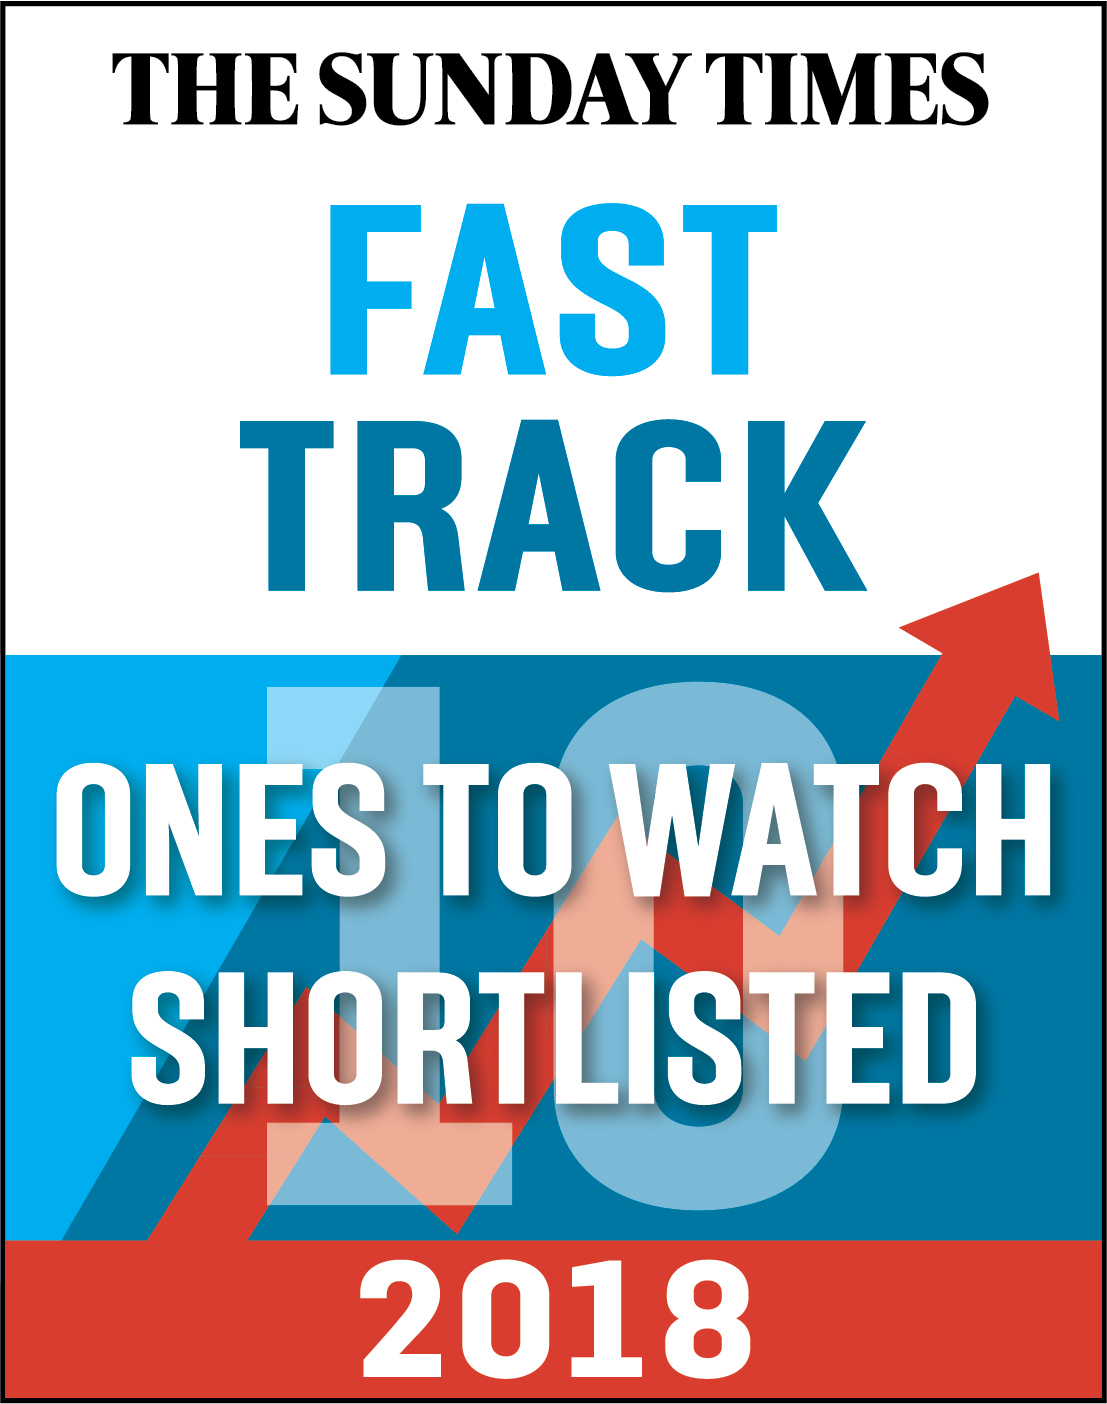 Hochanda shortlisted for the Sunday Times Fast Track Top 100 One's to Watch award.